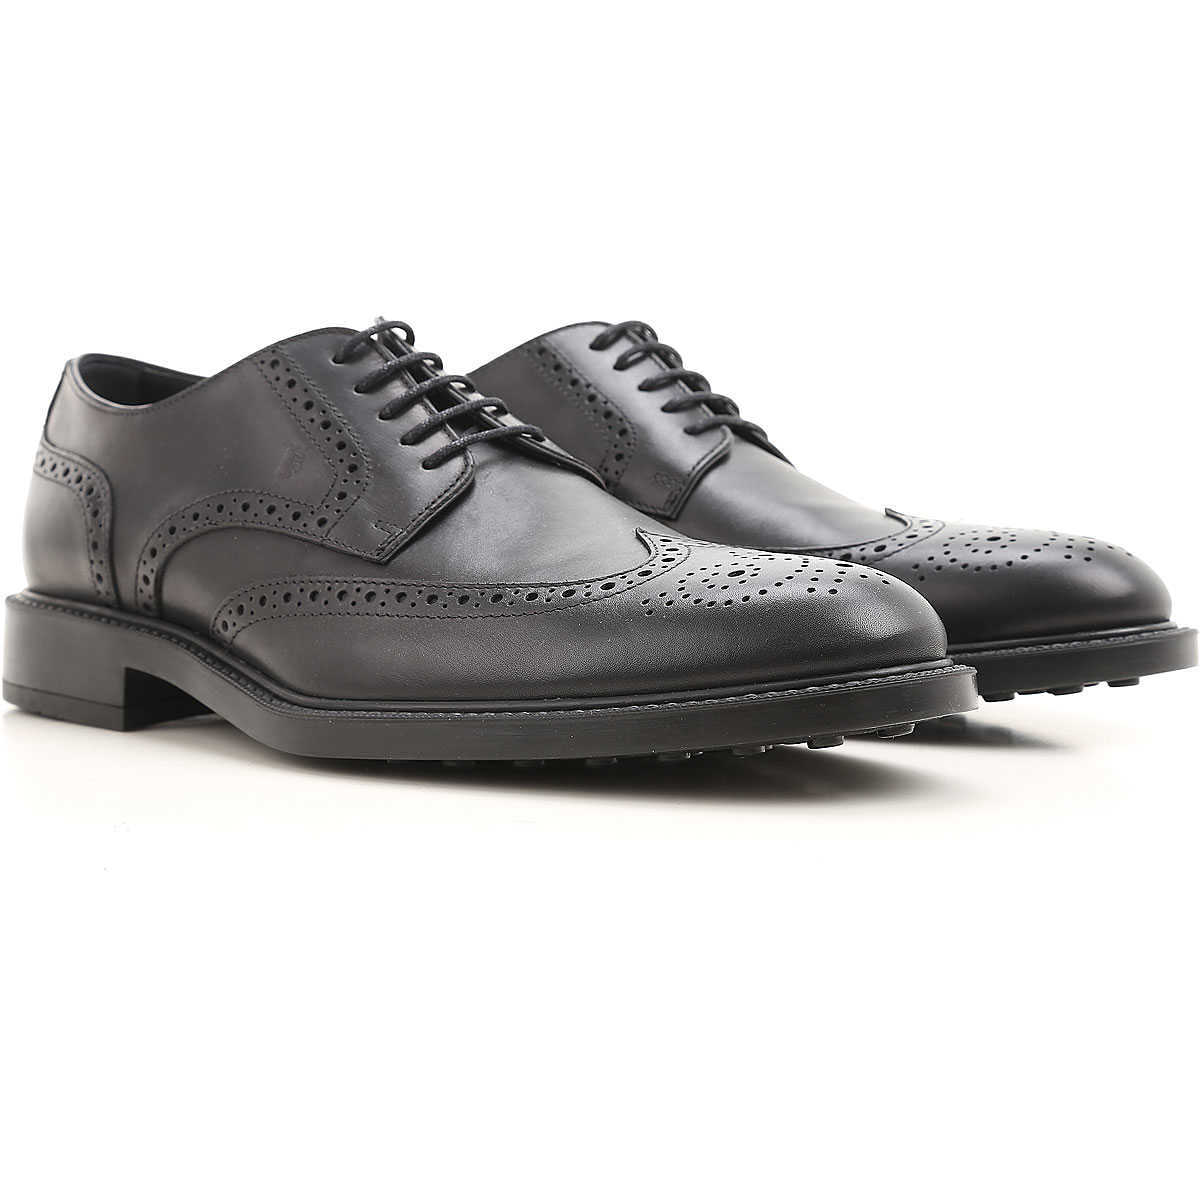 Tods Lace Up Shoes for Men Oxfords 10 10.5 11 12 5 5.5 6 6.5 7 7.5 8 8.5 9 9.5 Derbies and Brogues On Sale UK - GOOFASH